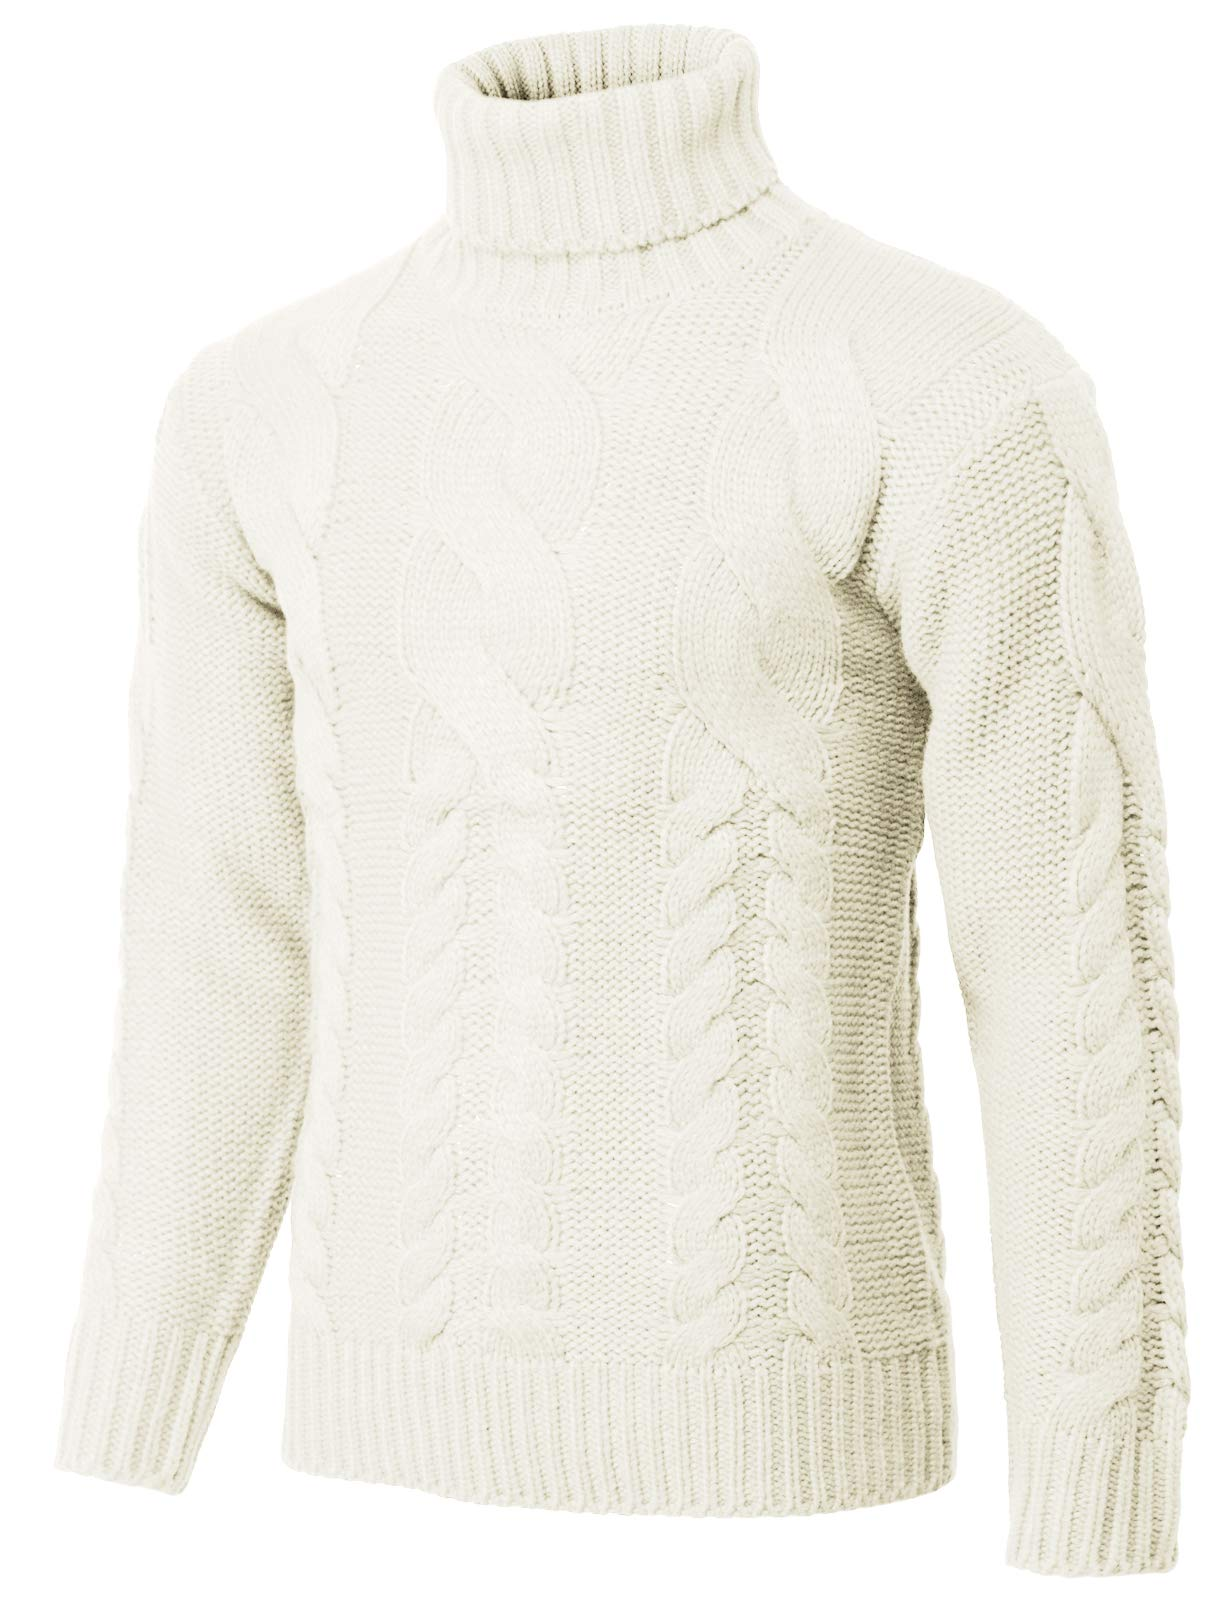 H2H Mens Casual Slim Fit Turtleneck Pullover Sweaters Knitted Long Sleeve Twisted Ivory US M/Asia L (KMOSWL250)